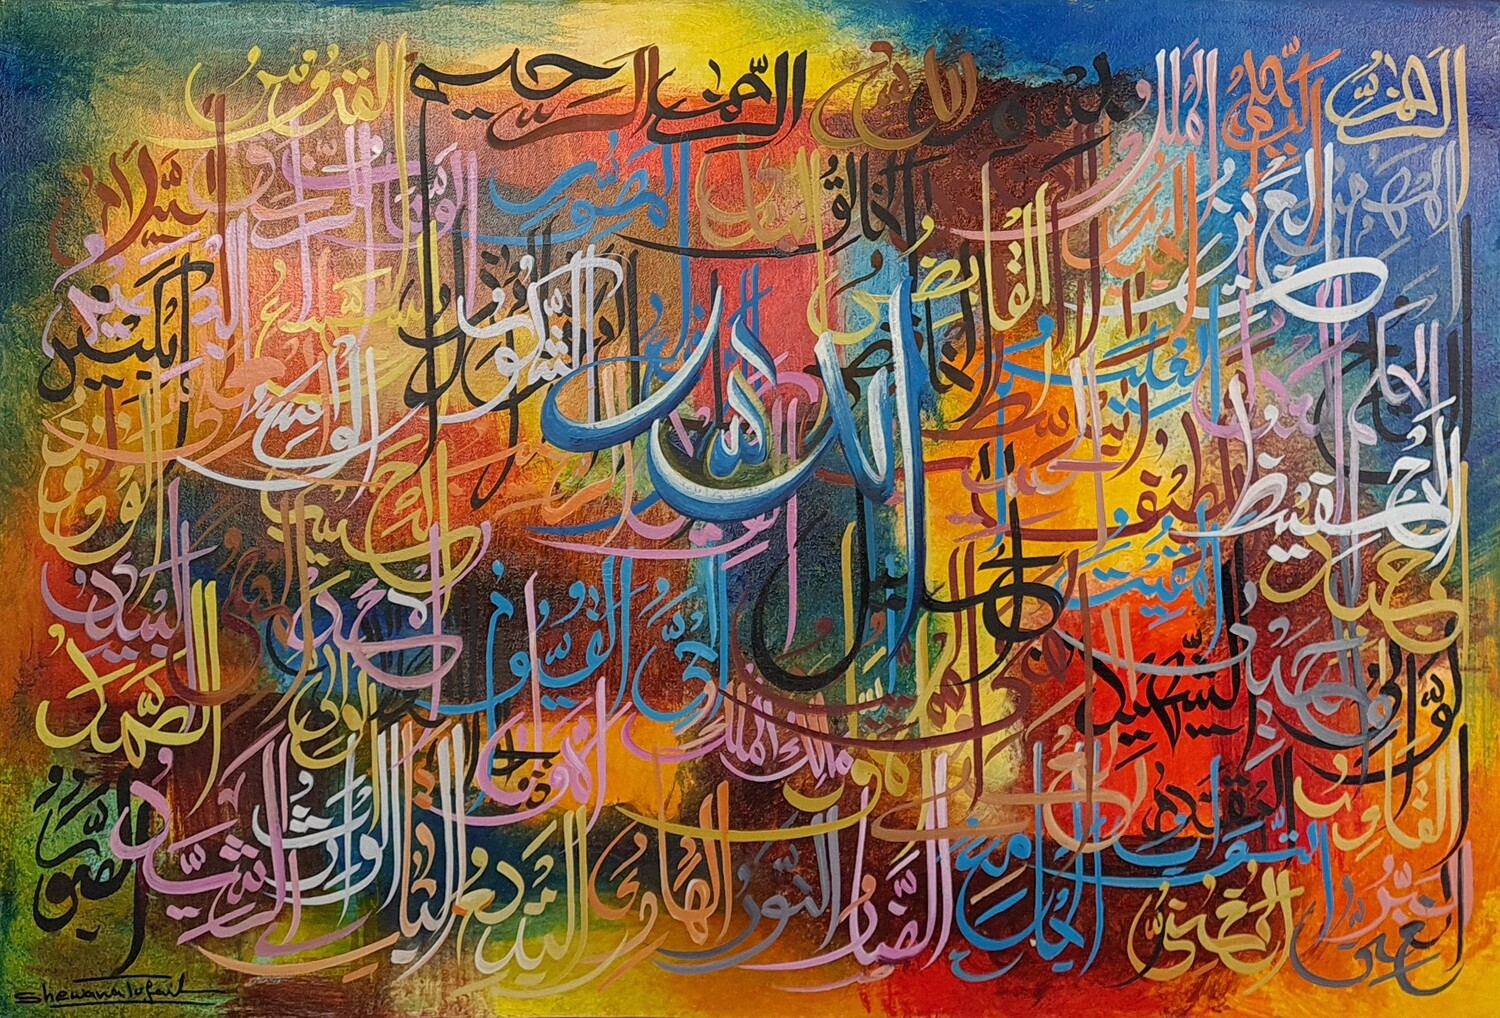 99 Names of Allah Abstract Blue Tones Original Hand-painted Canvas